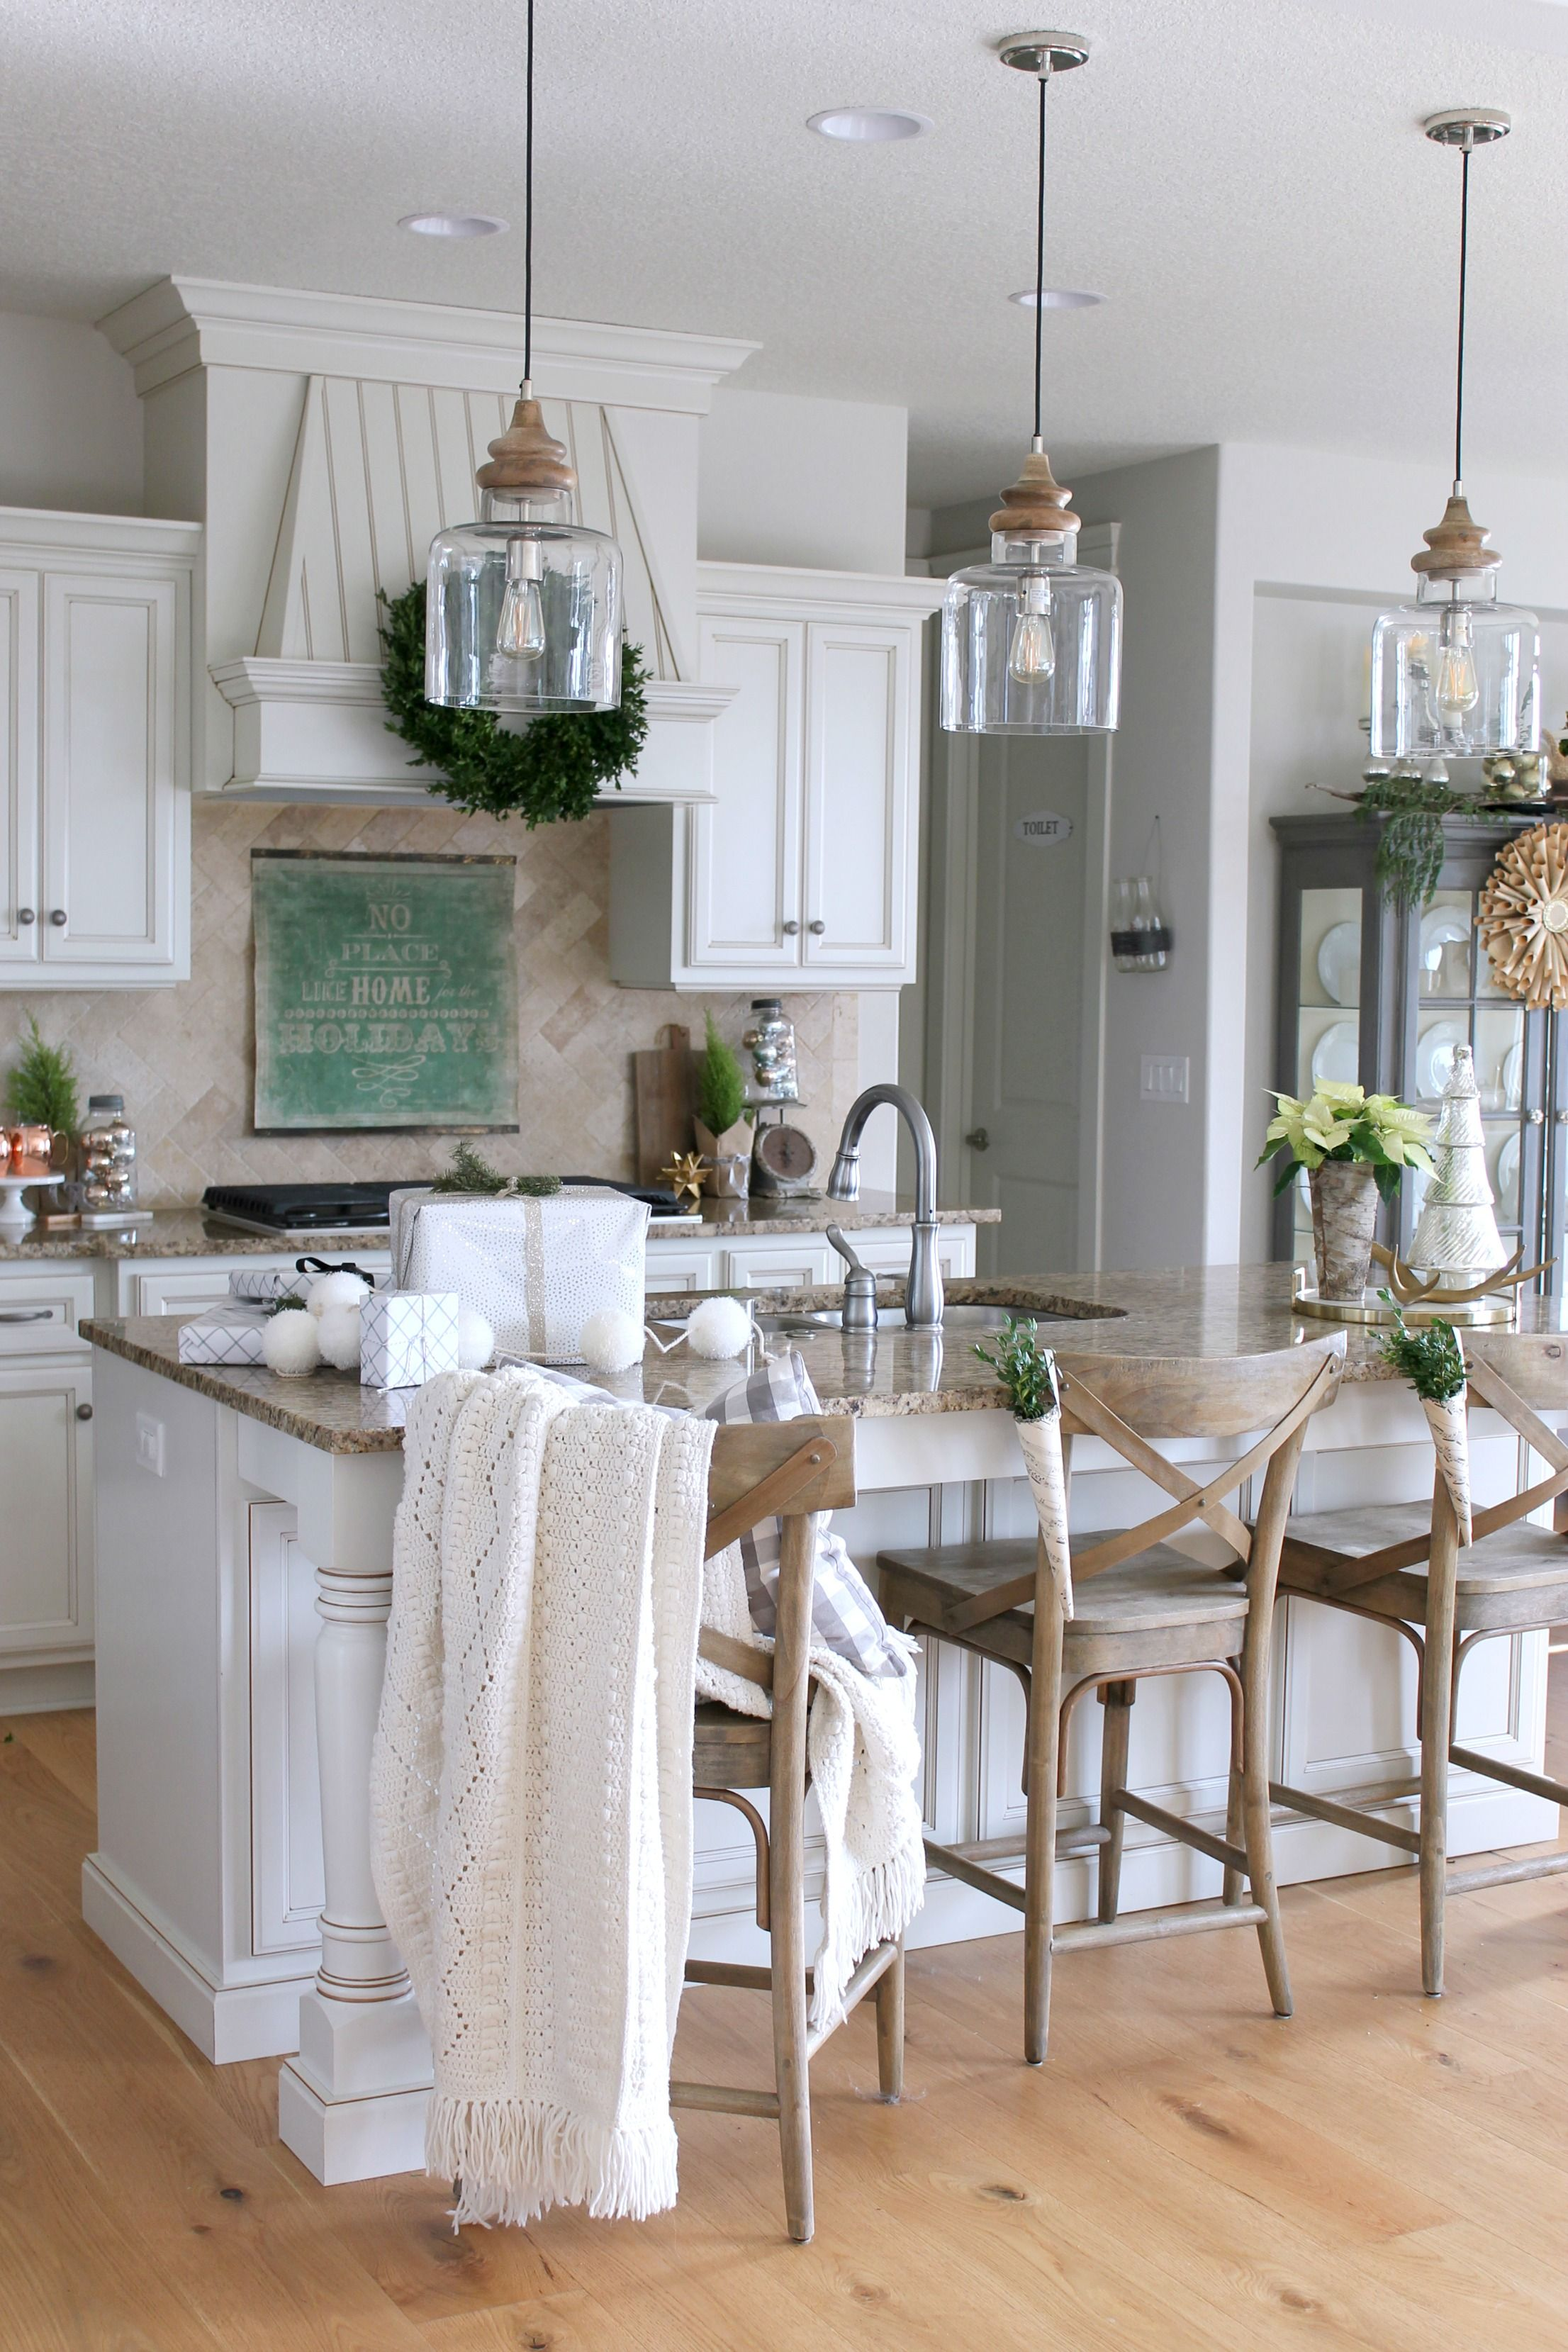 New Farmhouse Style Island Pendant Lights